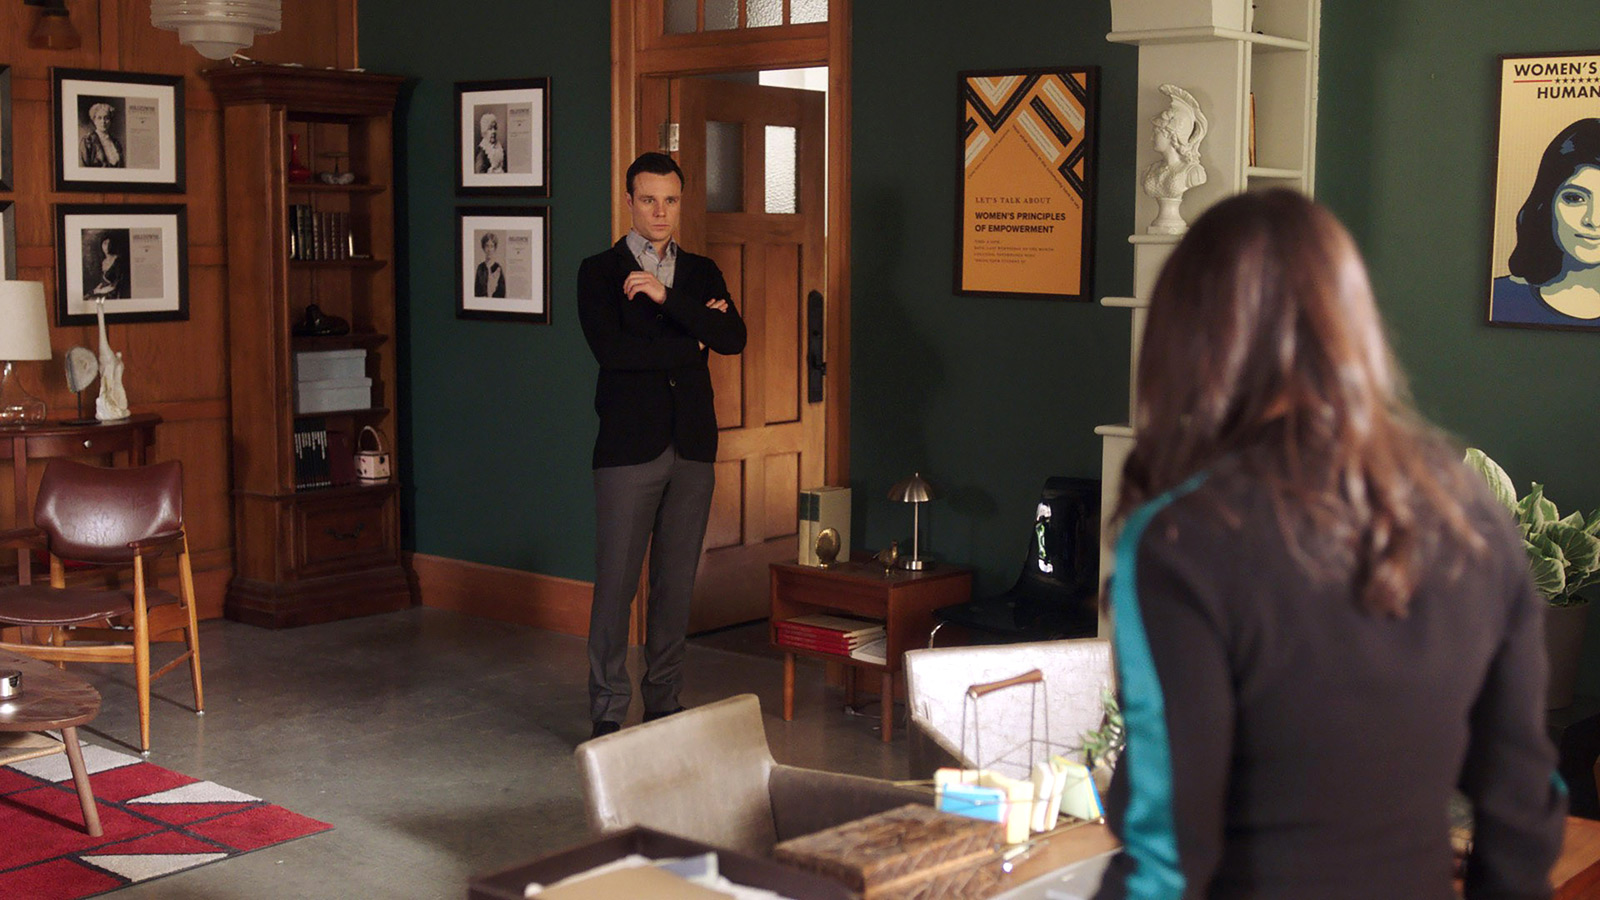 CHARMED: S1 - HARRY'S UNIVERSITY OFFICE - SCREEN STILL